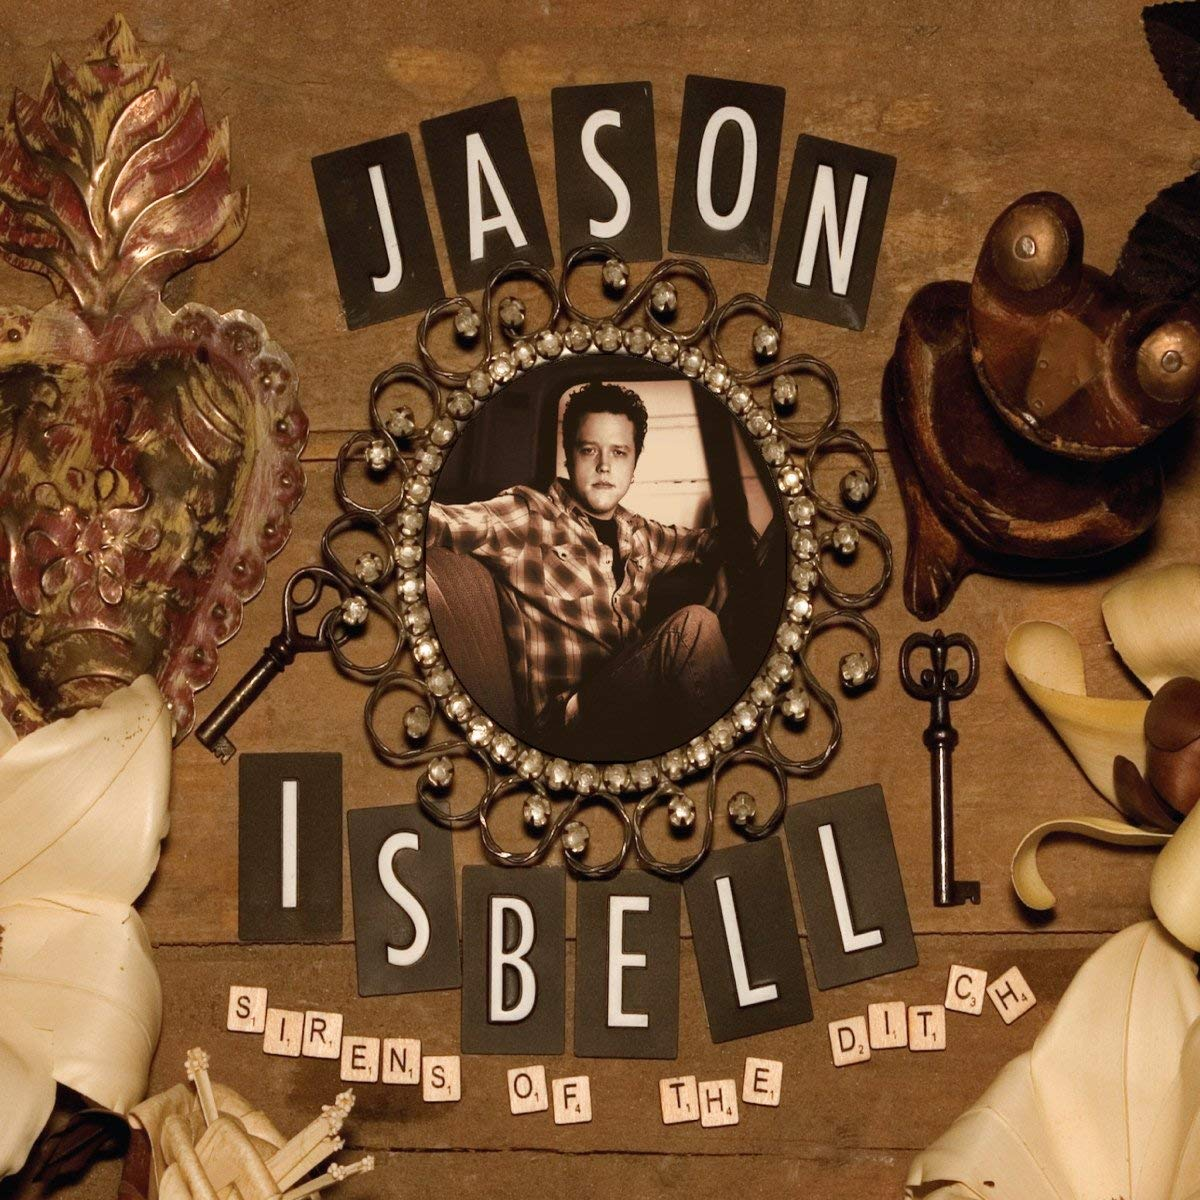 Jason Isbell - Sirens Of The Ditch: Deluxe Edition [Indie Exclusive Limited Edition Clear LP]